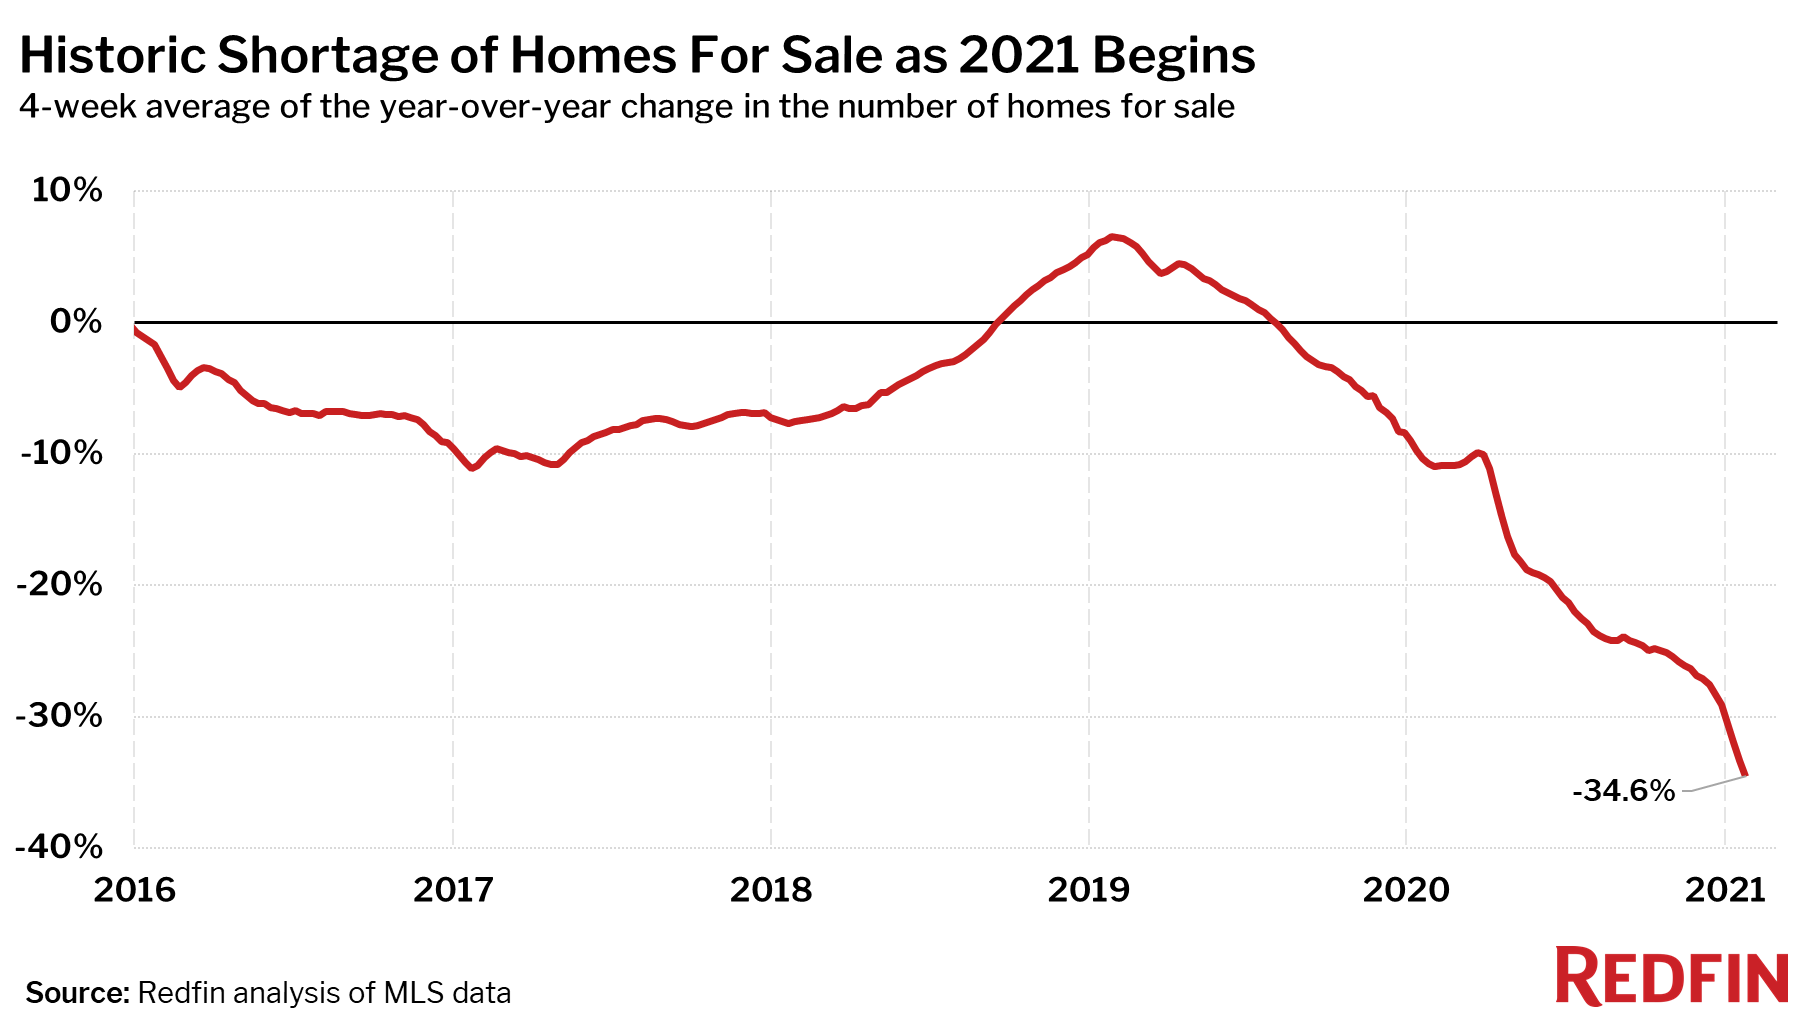 Historic Shortage of Homes For Sale as 2021 Begins